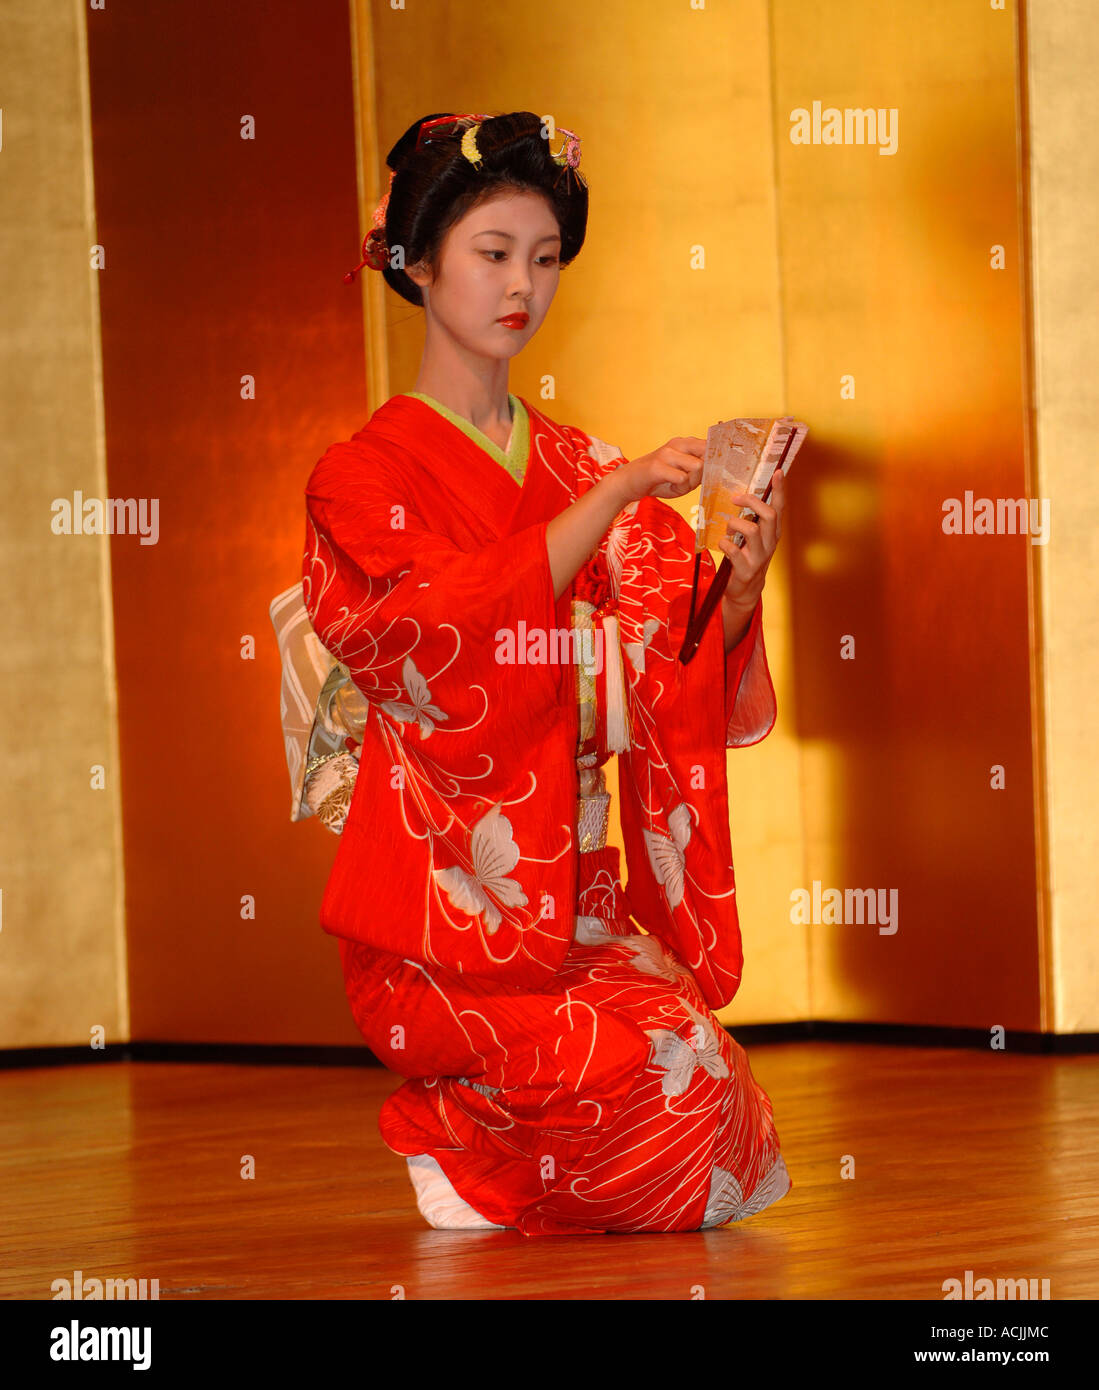 50 best Geisha girl photos images on Pinterest